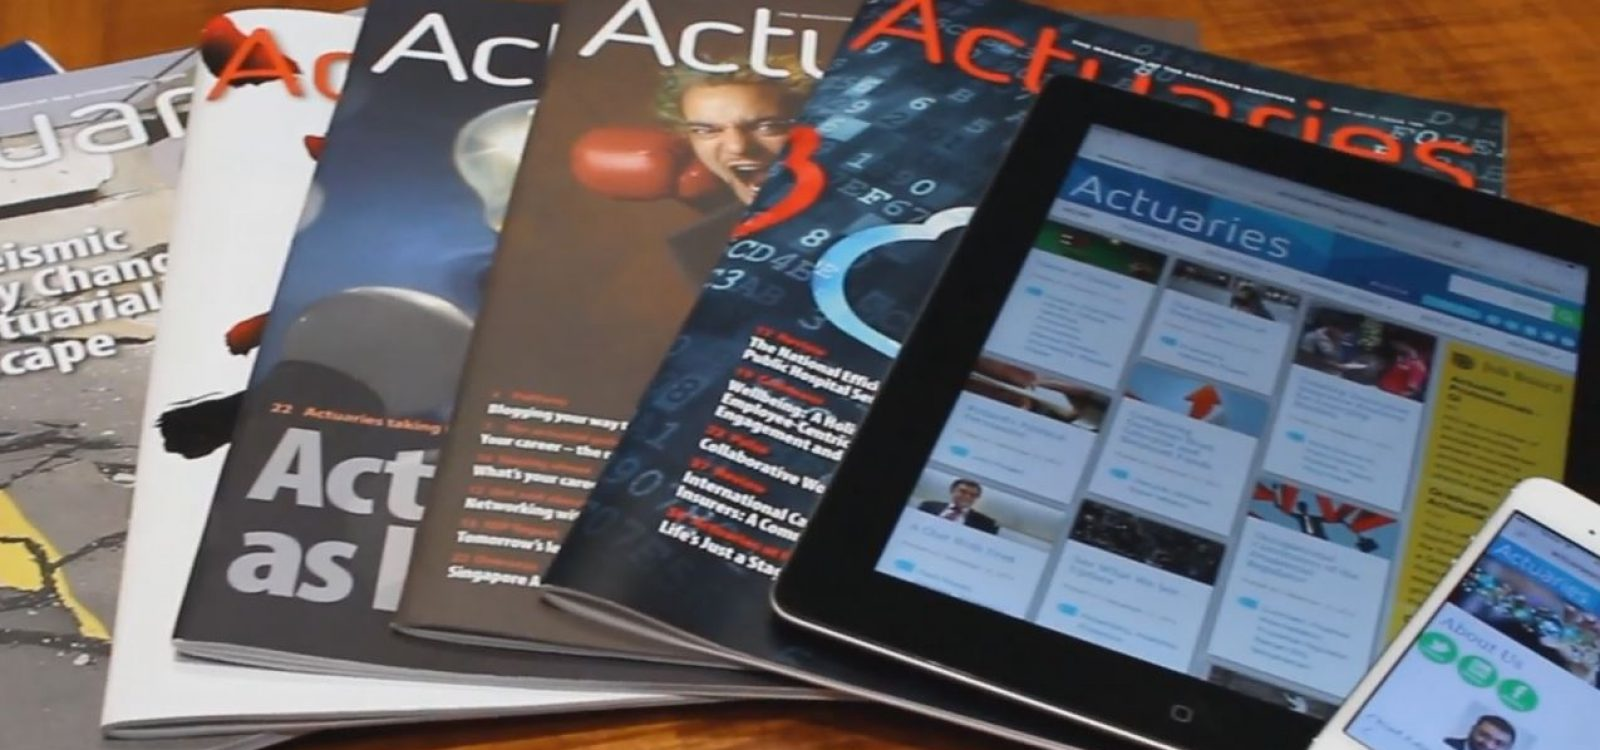 Welcome to Actuaries Digital